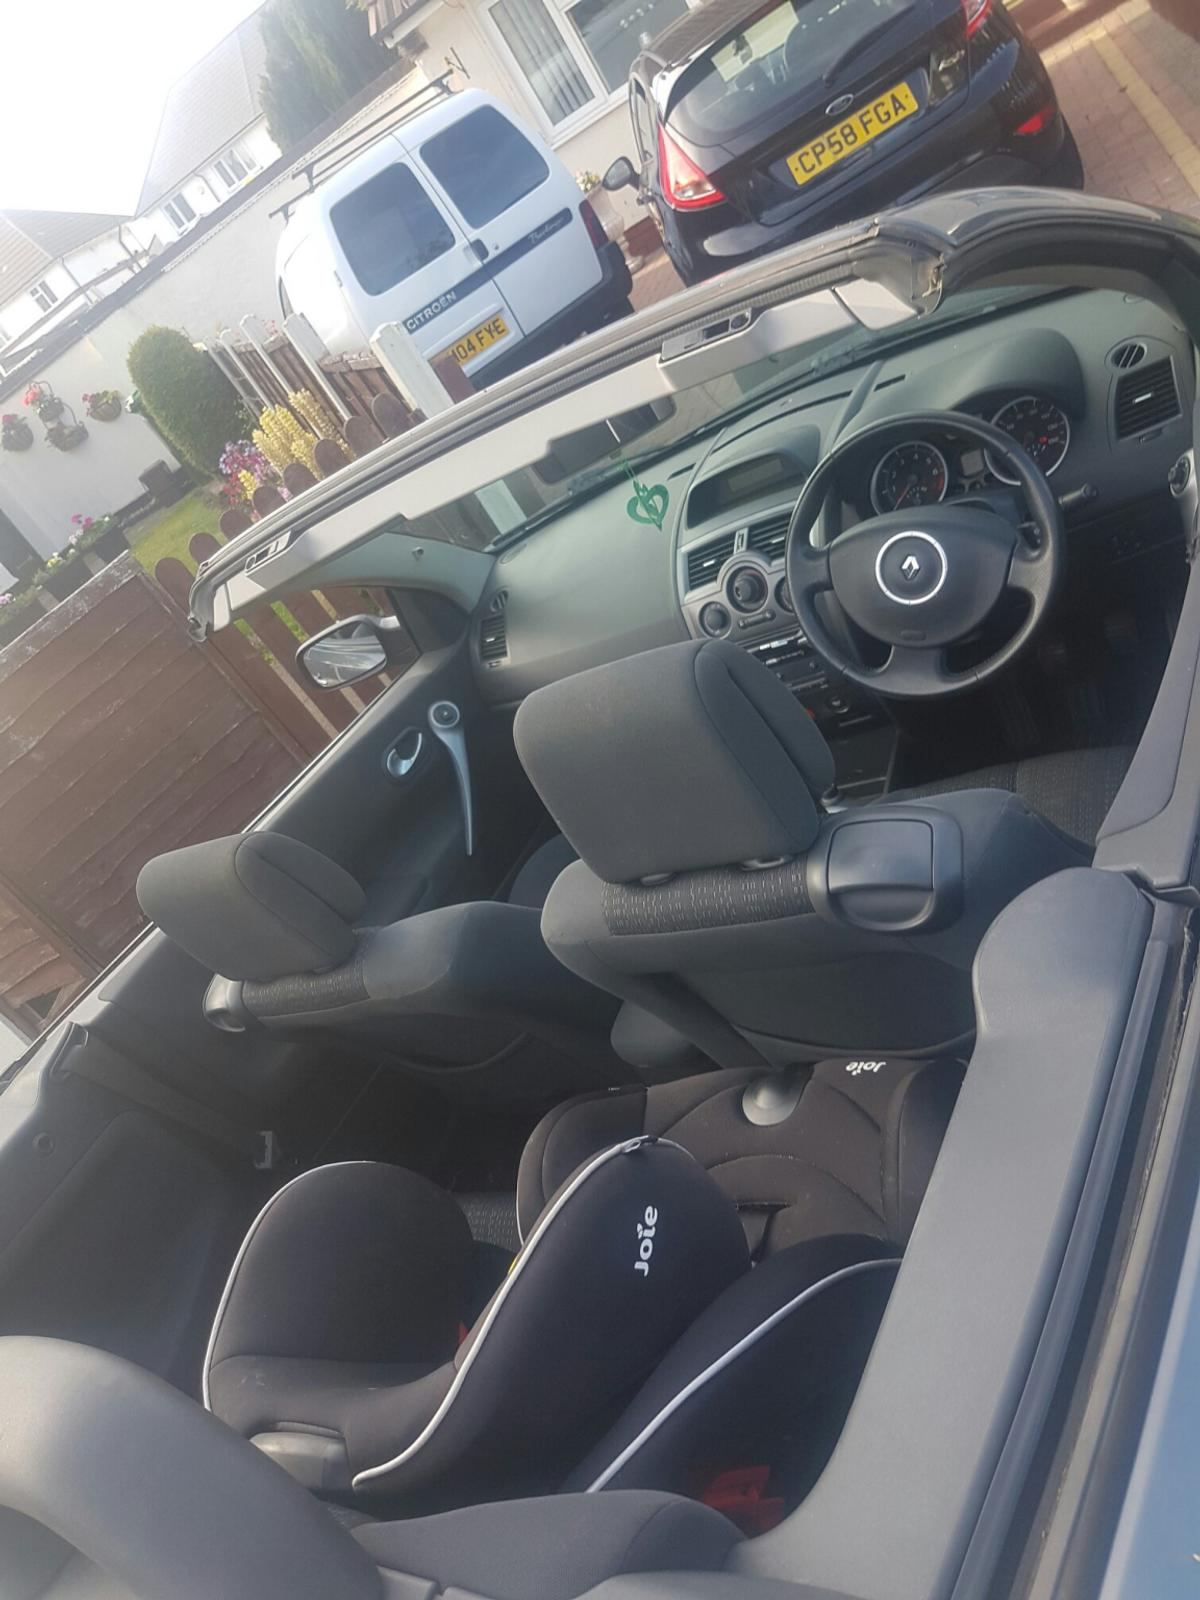 Renault megane convertible in WS10 Walsall for £700 00 for